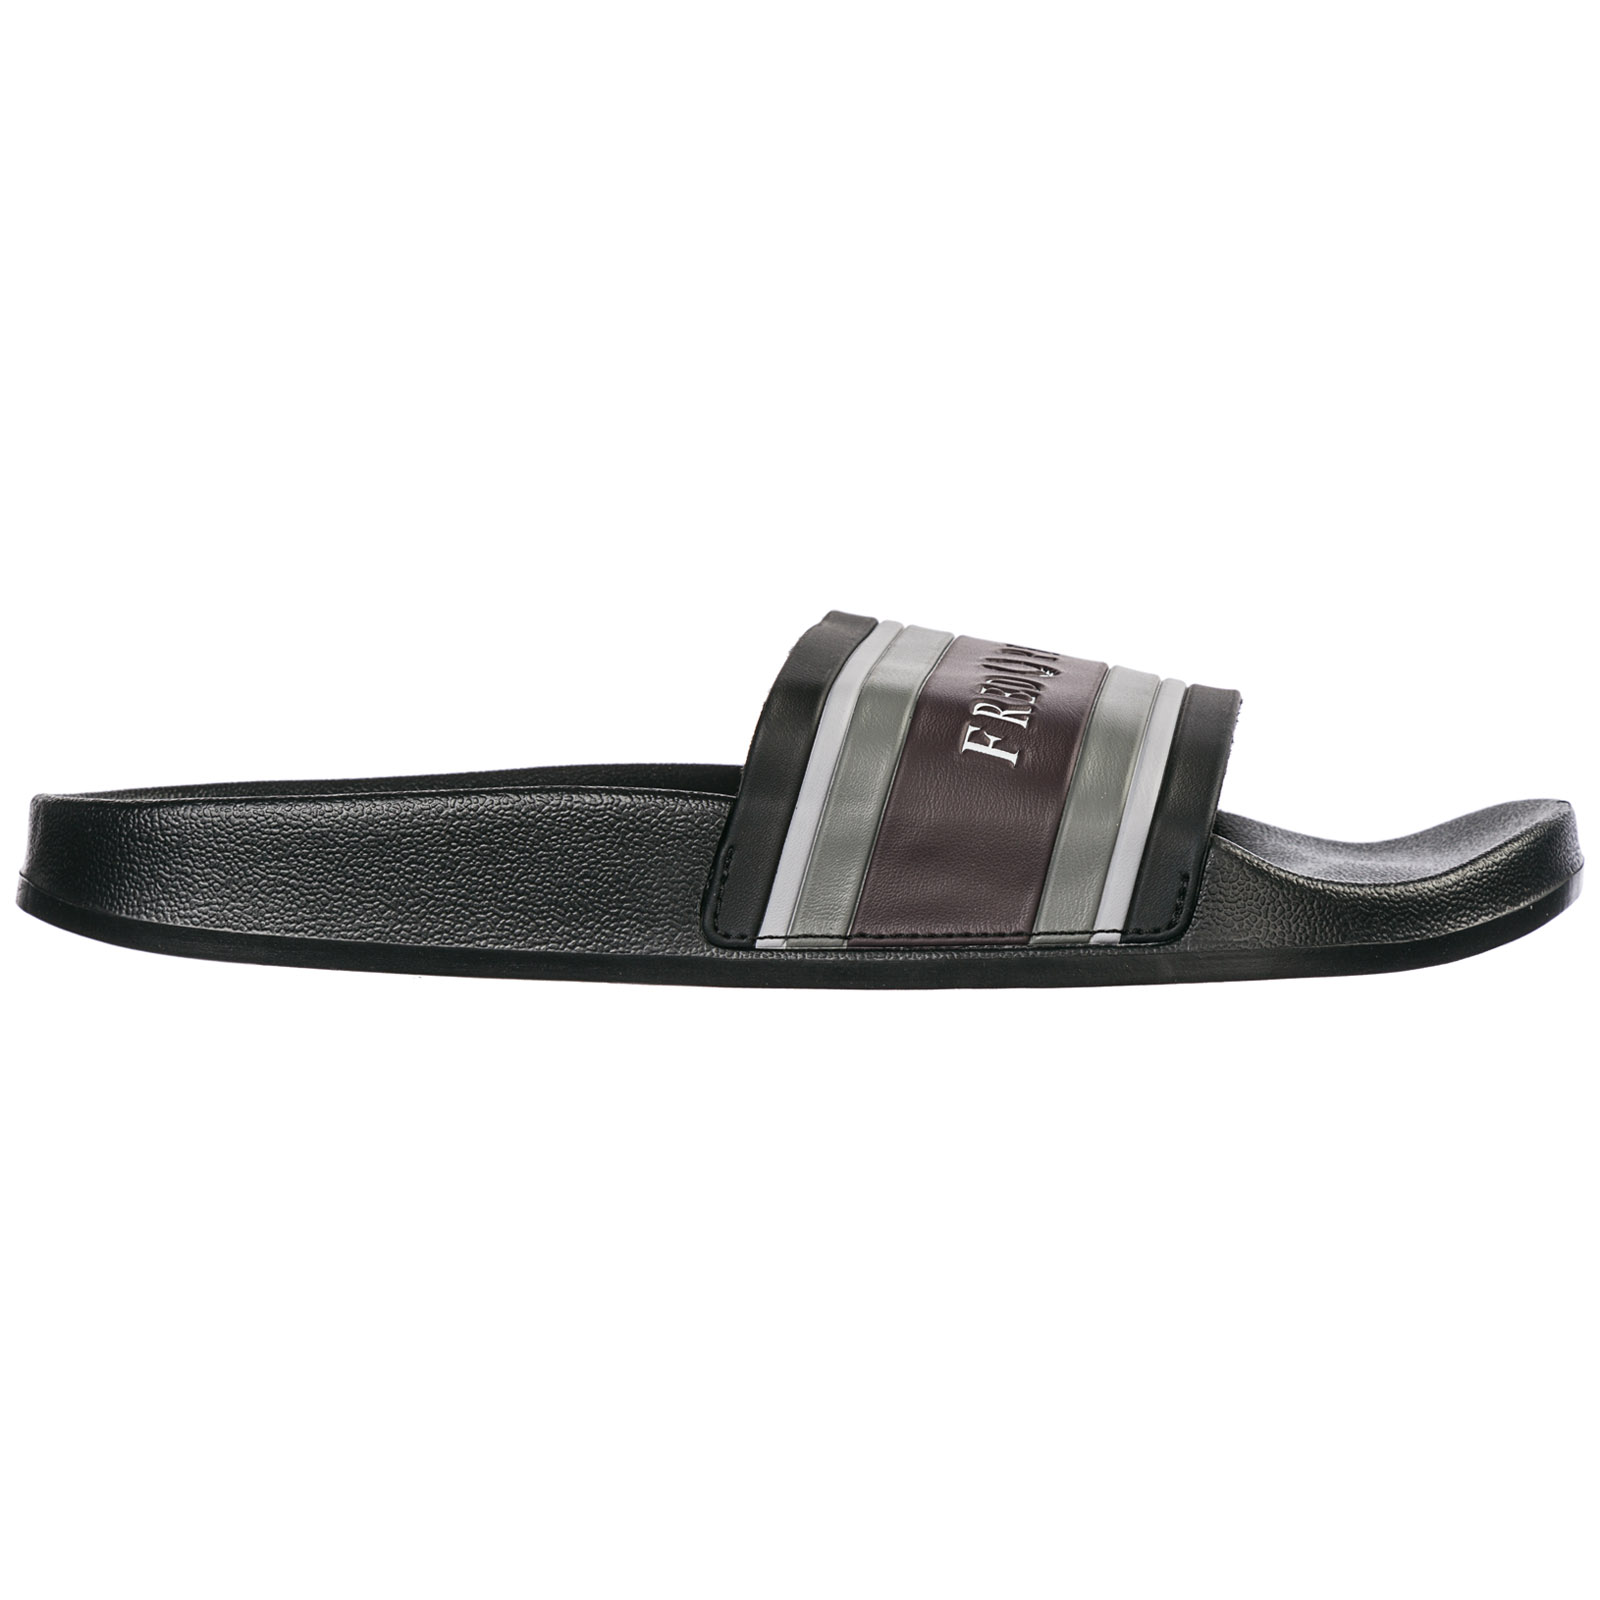 Fred Perry Men's Slippers Sandals Rubber In Black